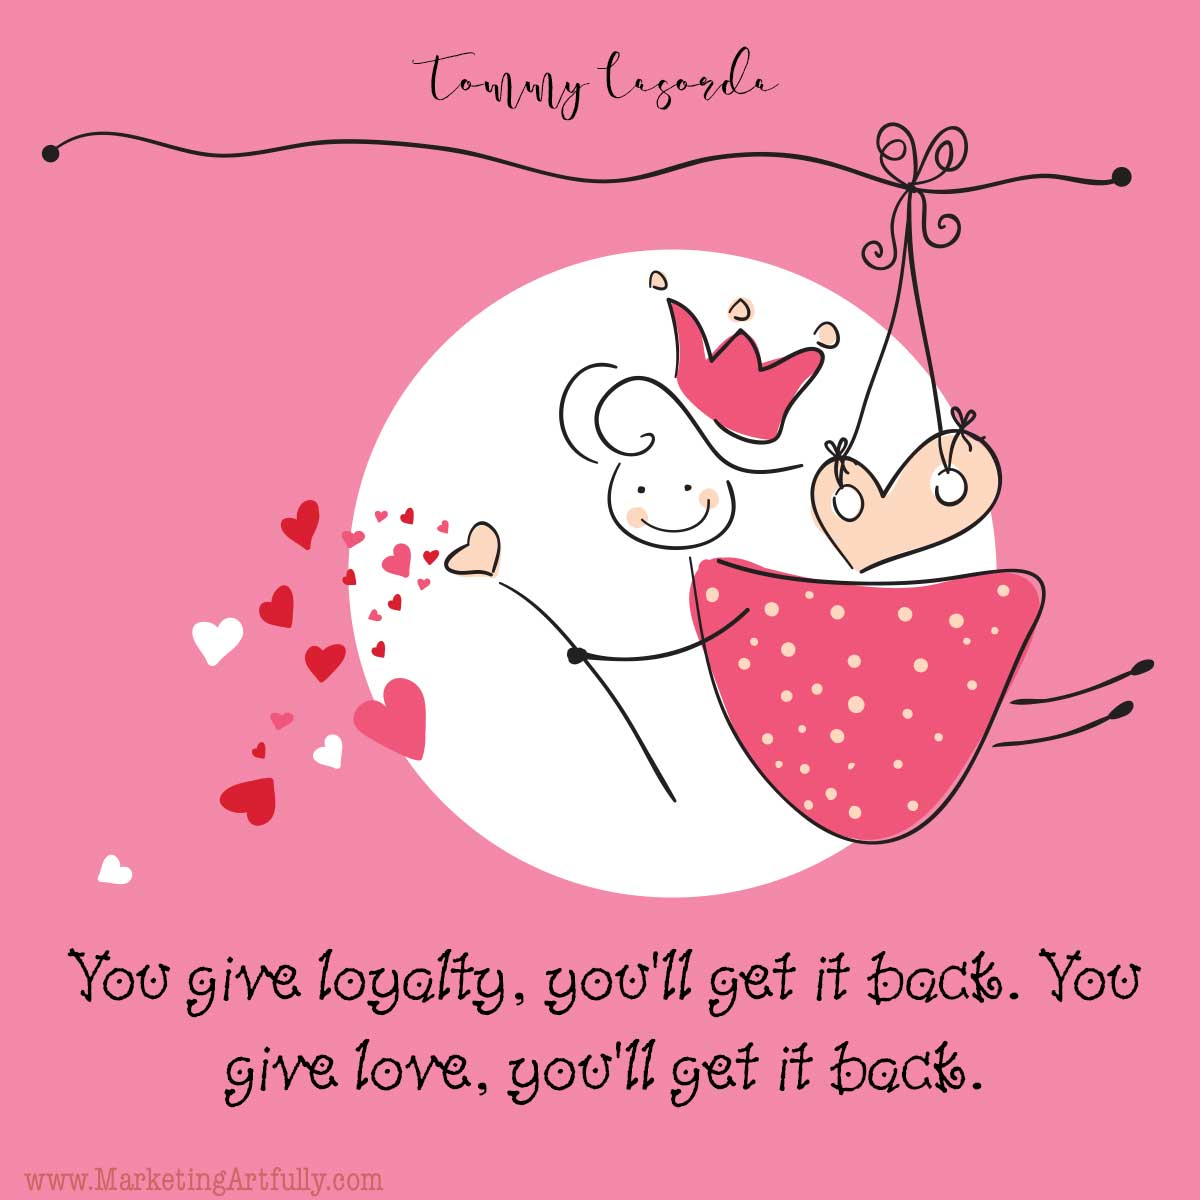 You give loyalty, you'll get it back. You give love, you'll get it back. Tommy Lasorda